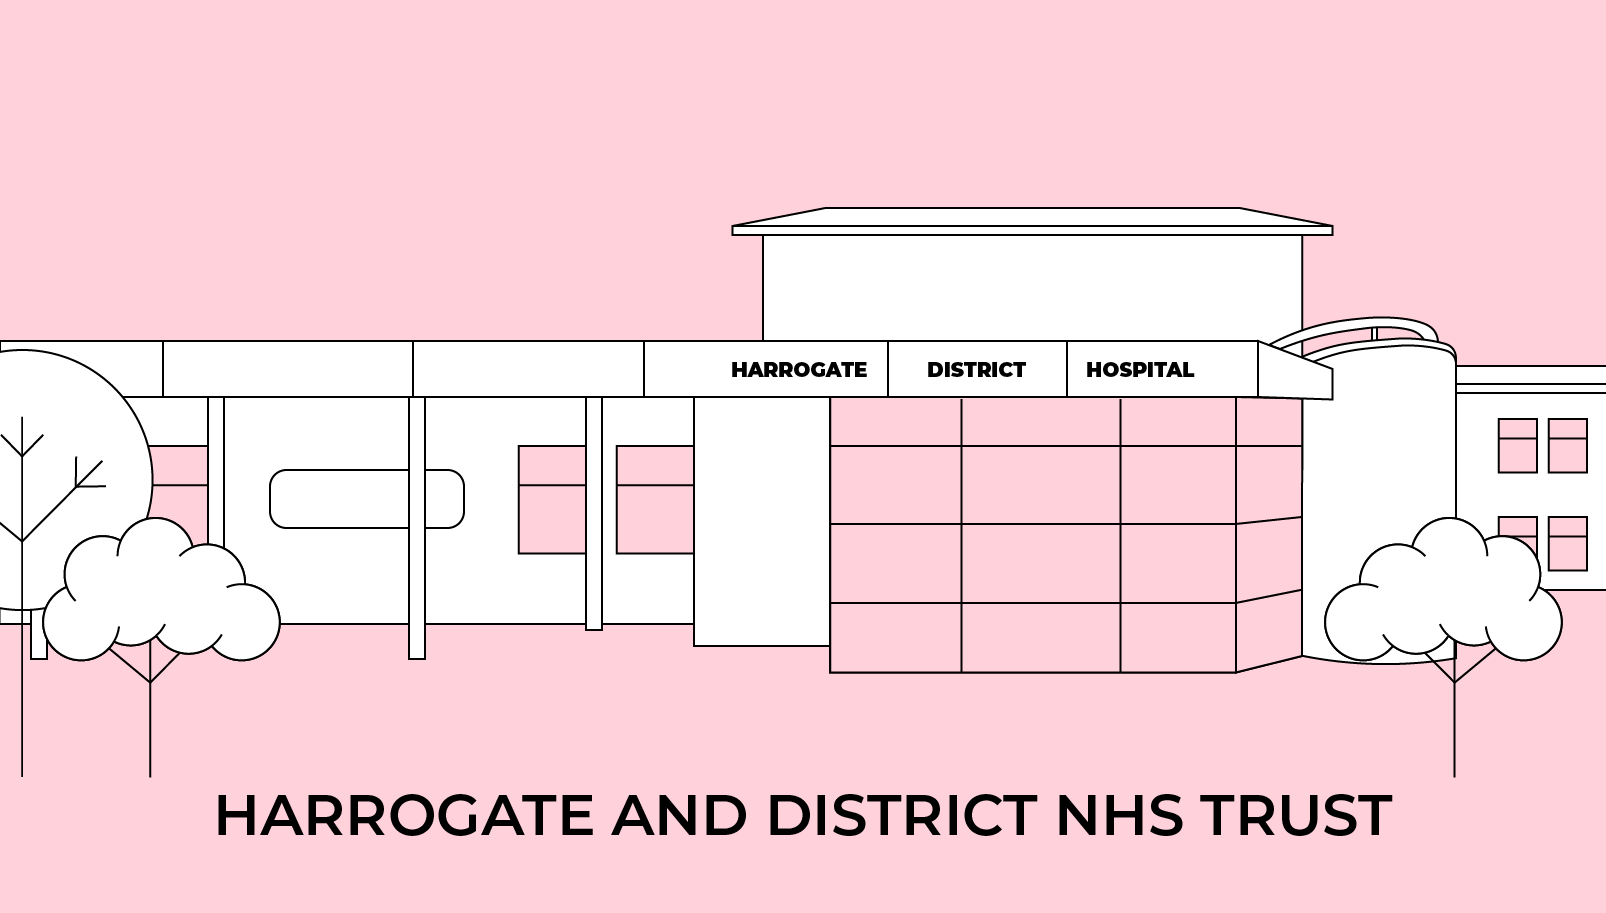 Harrogate and District NHS Trust